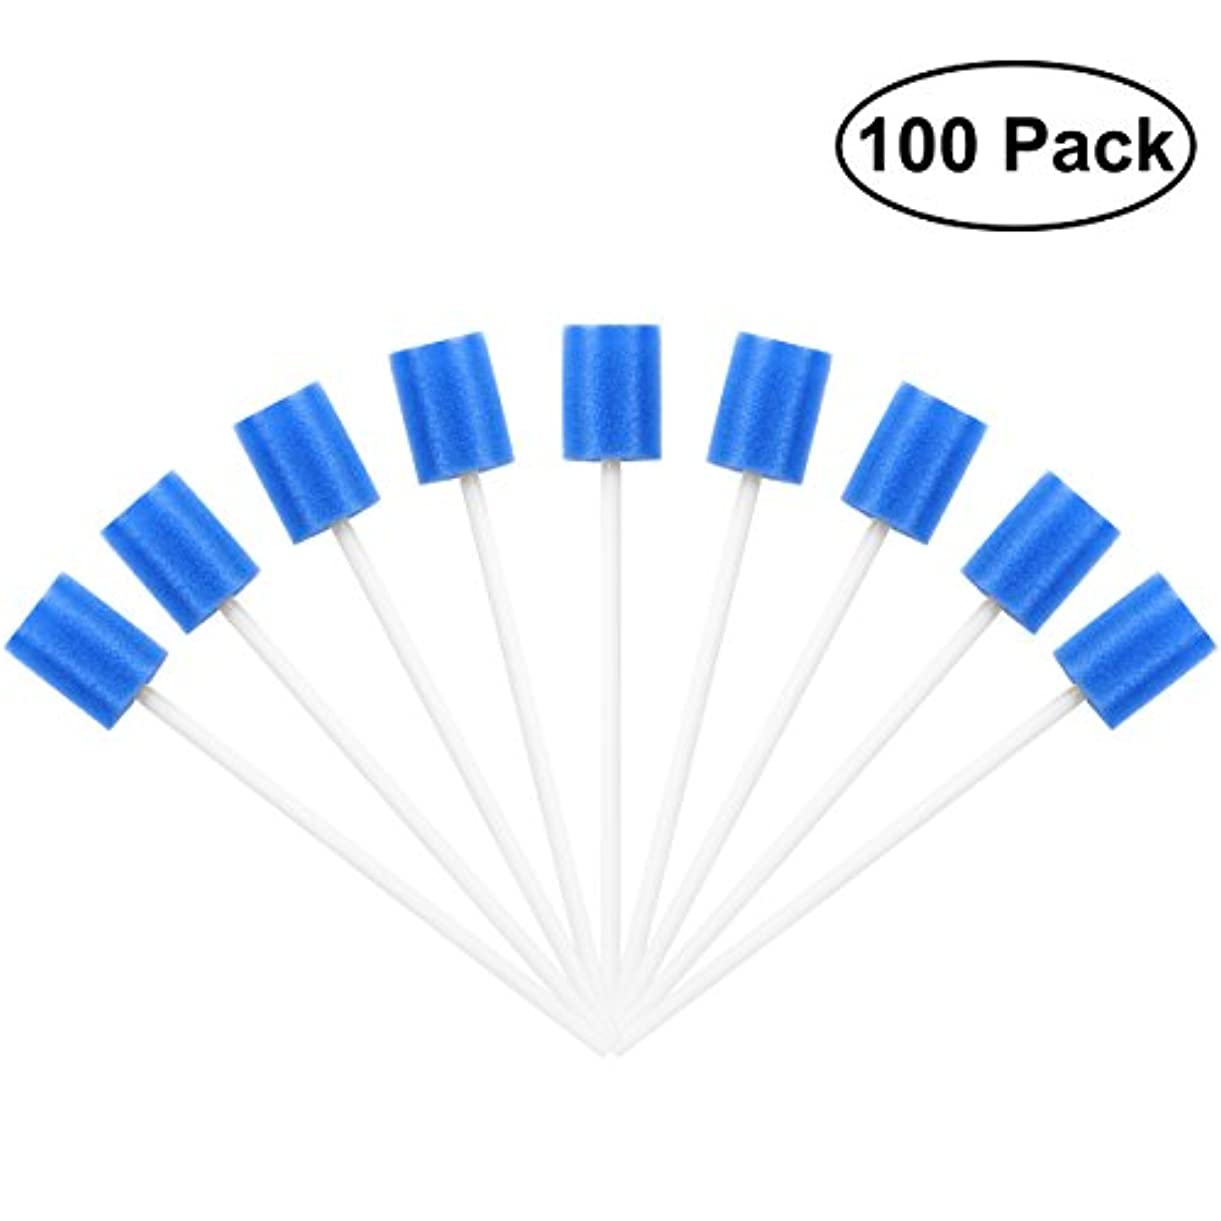 初期の雪の野心ROSENICE Mouth Sponges Dental Swabs 100Pcs Disposable Oral Care Swabs (Blue)